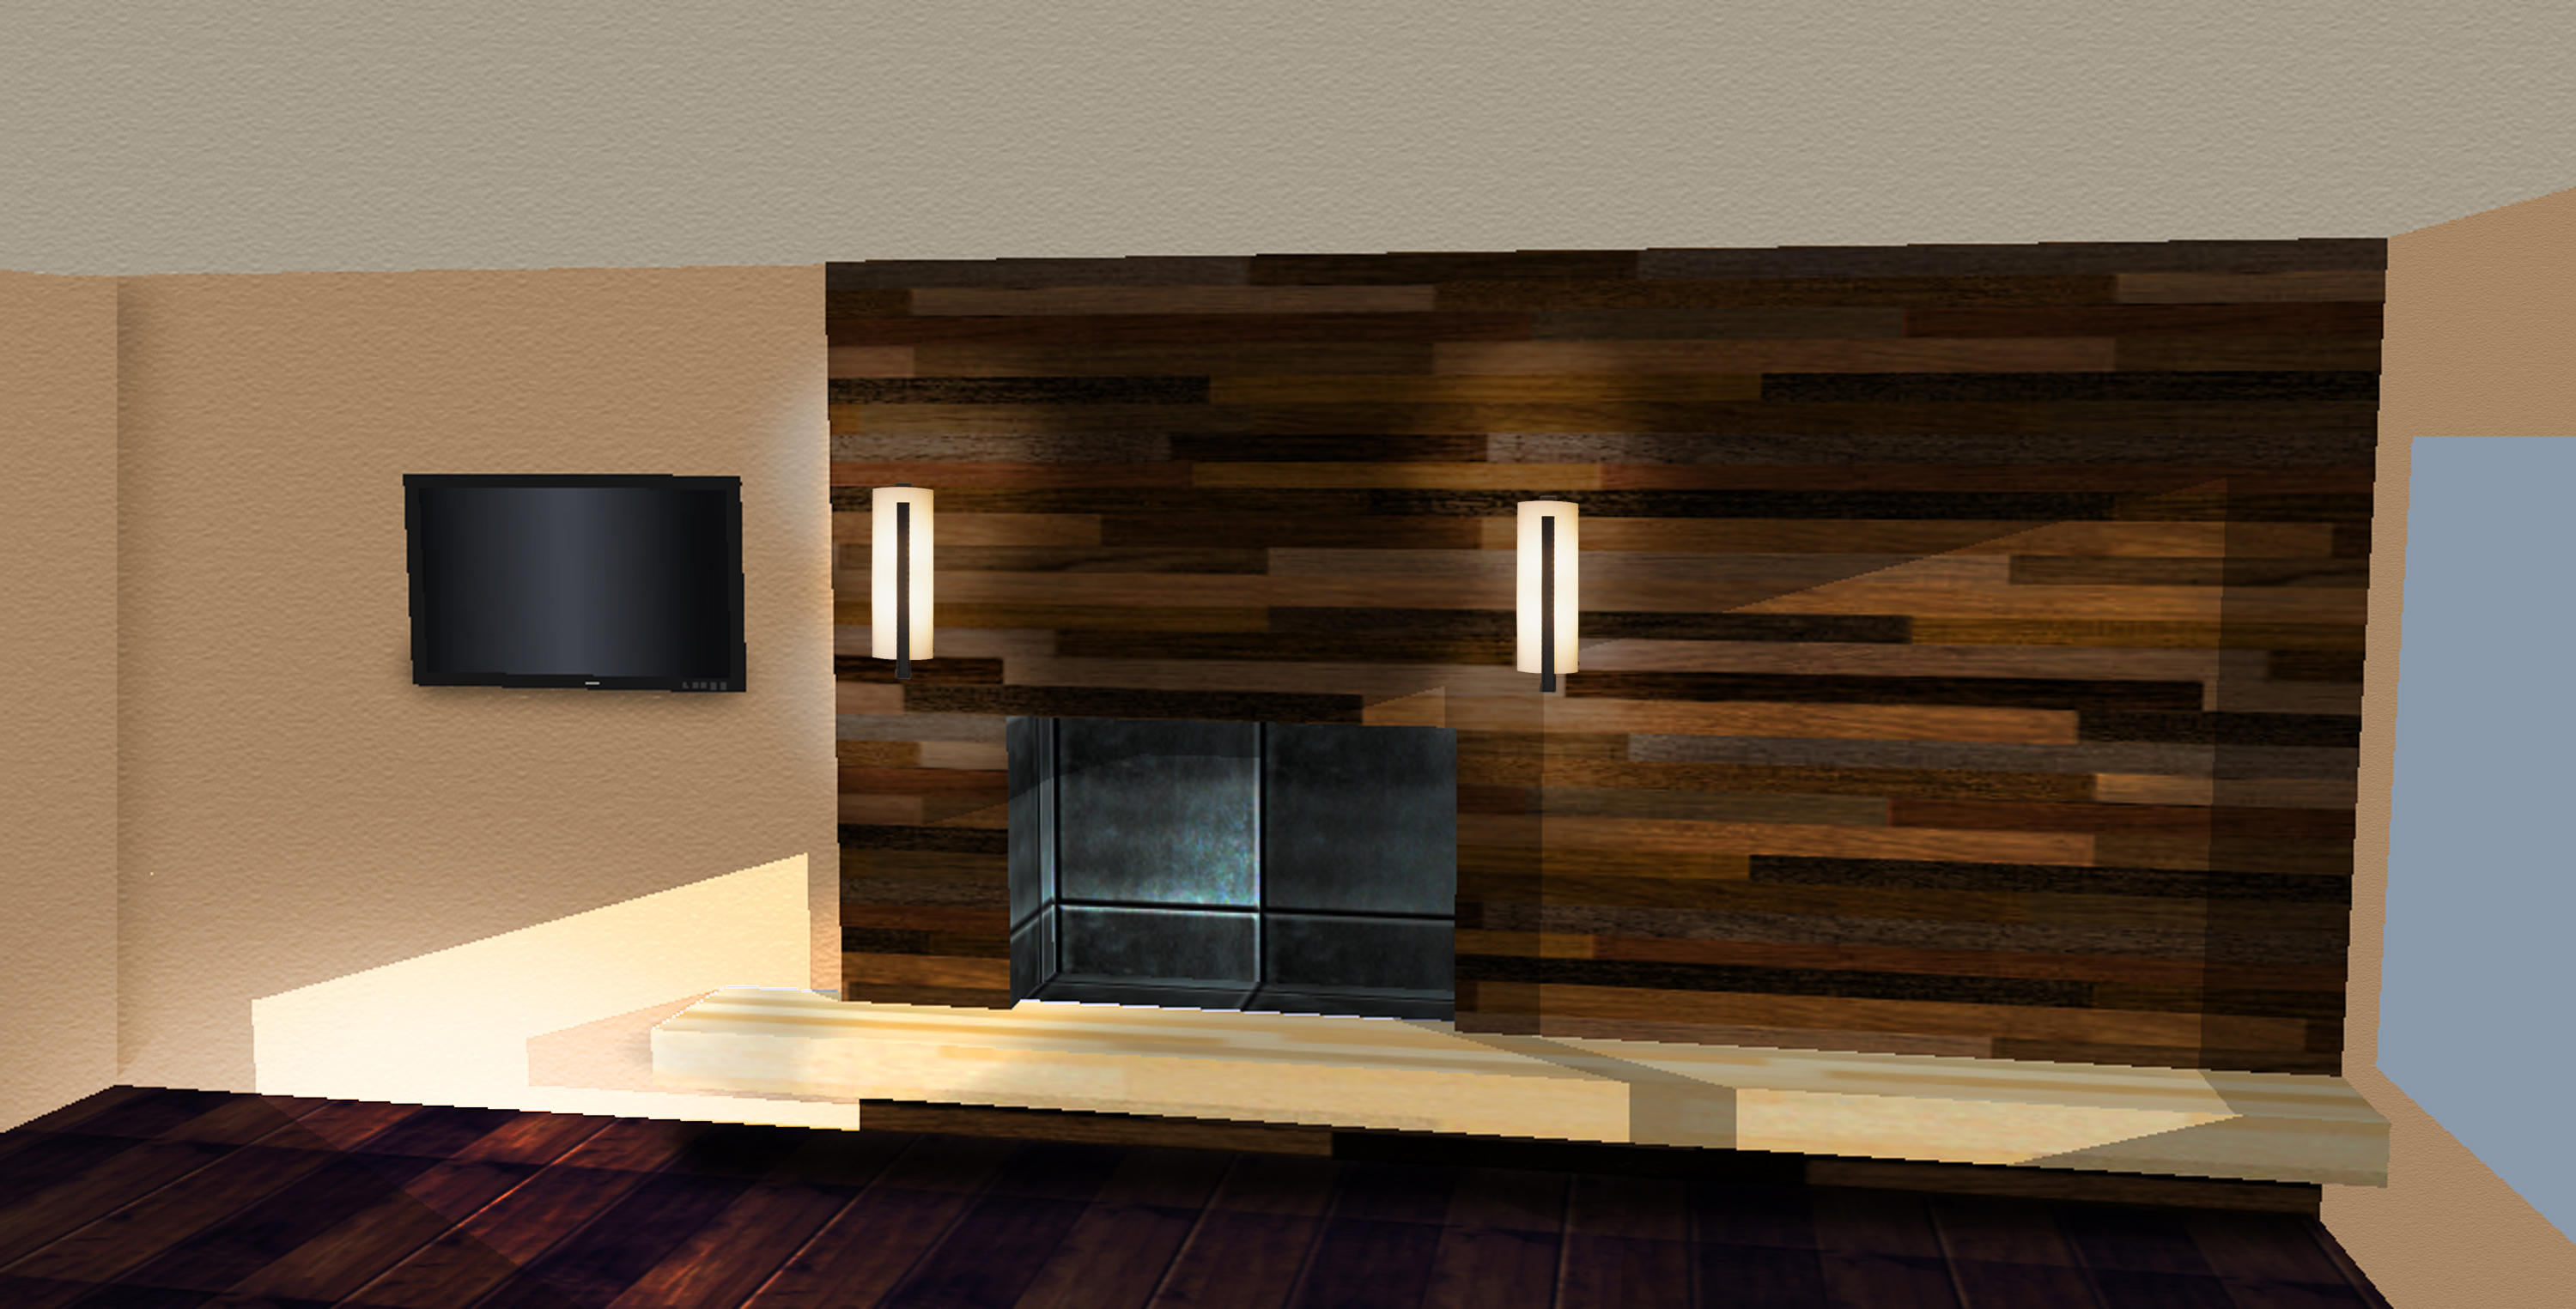 Luxurious Modern Fireplace Design Picture